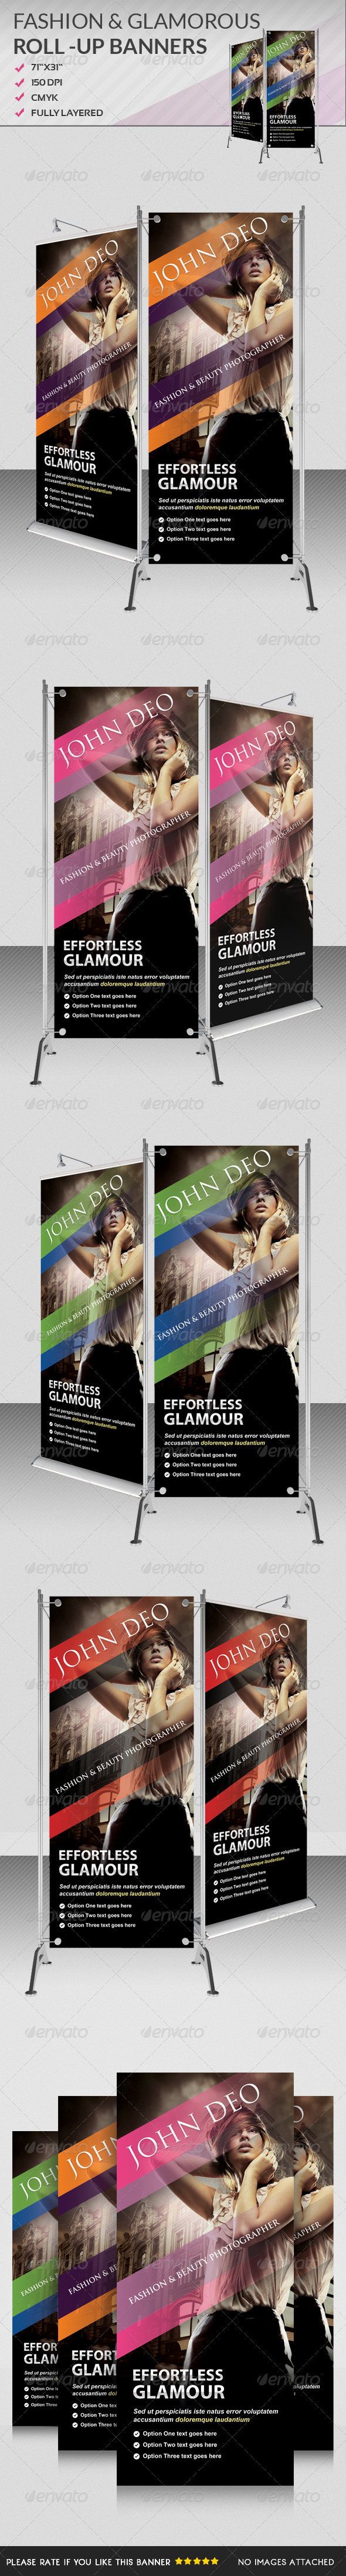 GraphicRiver Multiporpose Glamorous Roll Up Banners II 5172689